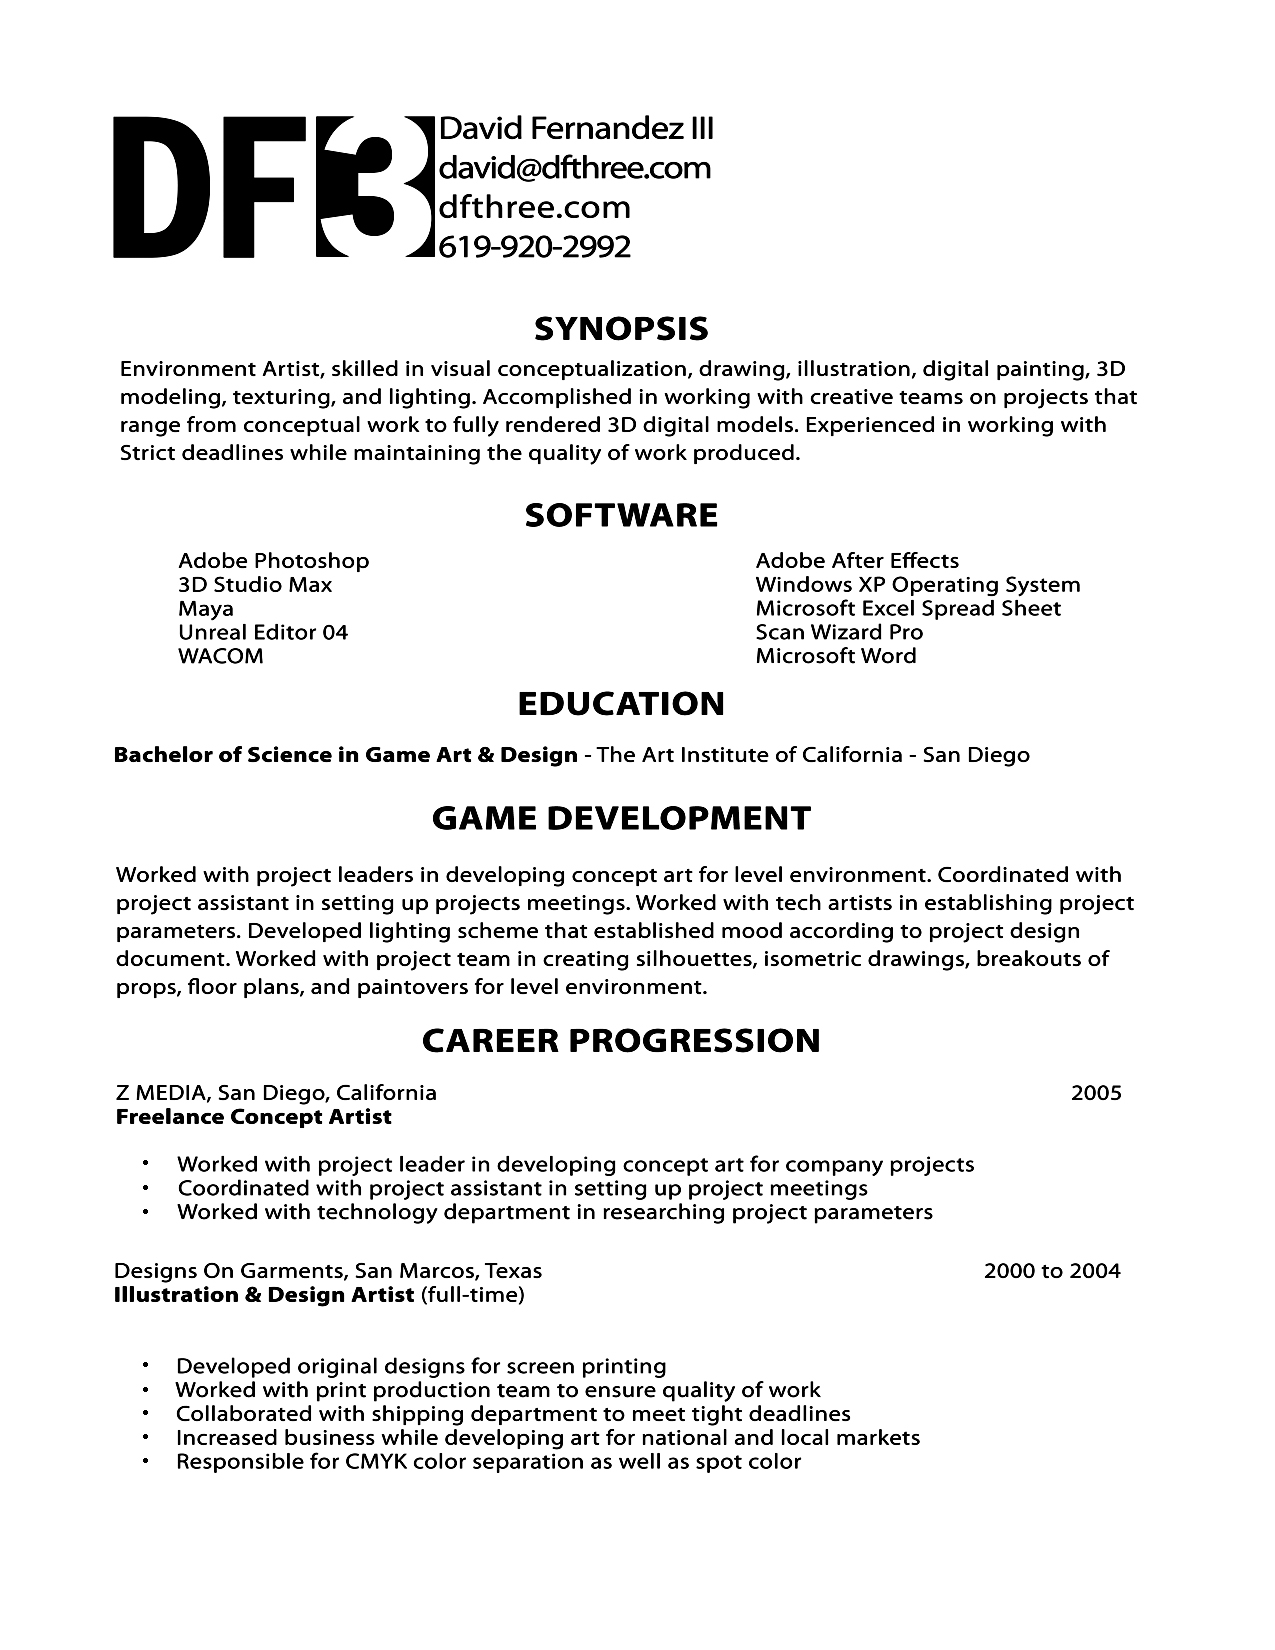 Opposenewapstandardsus  Winning Game Developer Resume Game Tester Resume Sample Game Tester  With Inspiring Better Jobs Faster With Easy On The Eye Resume Cover Letter Example Also Creative Resume In Addition Skills To List On Resume And Resume Template Download As Well As Basic Resume Template Additionally High School Resume Template From Kelseymarieco With Opposenewapstandardsus  Inspiring Game Developer Resume Game Tester Resume Sample Game Tester  With Easy On The Eye Better Jobs Faster And Winning Resume Cover Letter Example Also Creative Resume In Addition Skills To List On Resume From Kelseymarieco